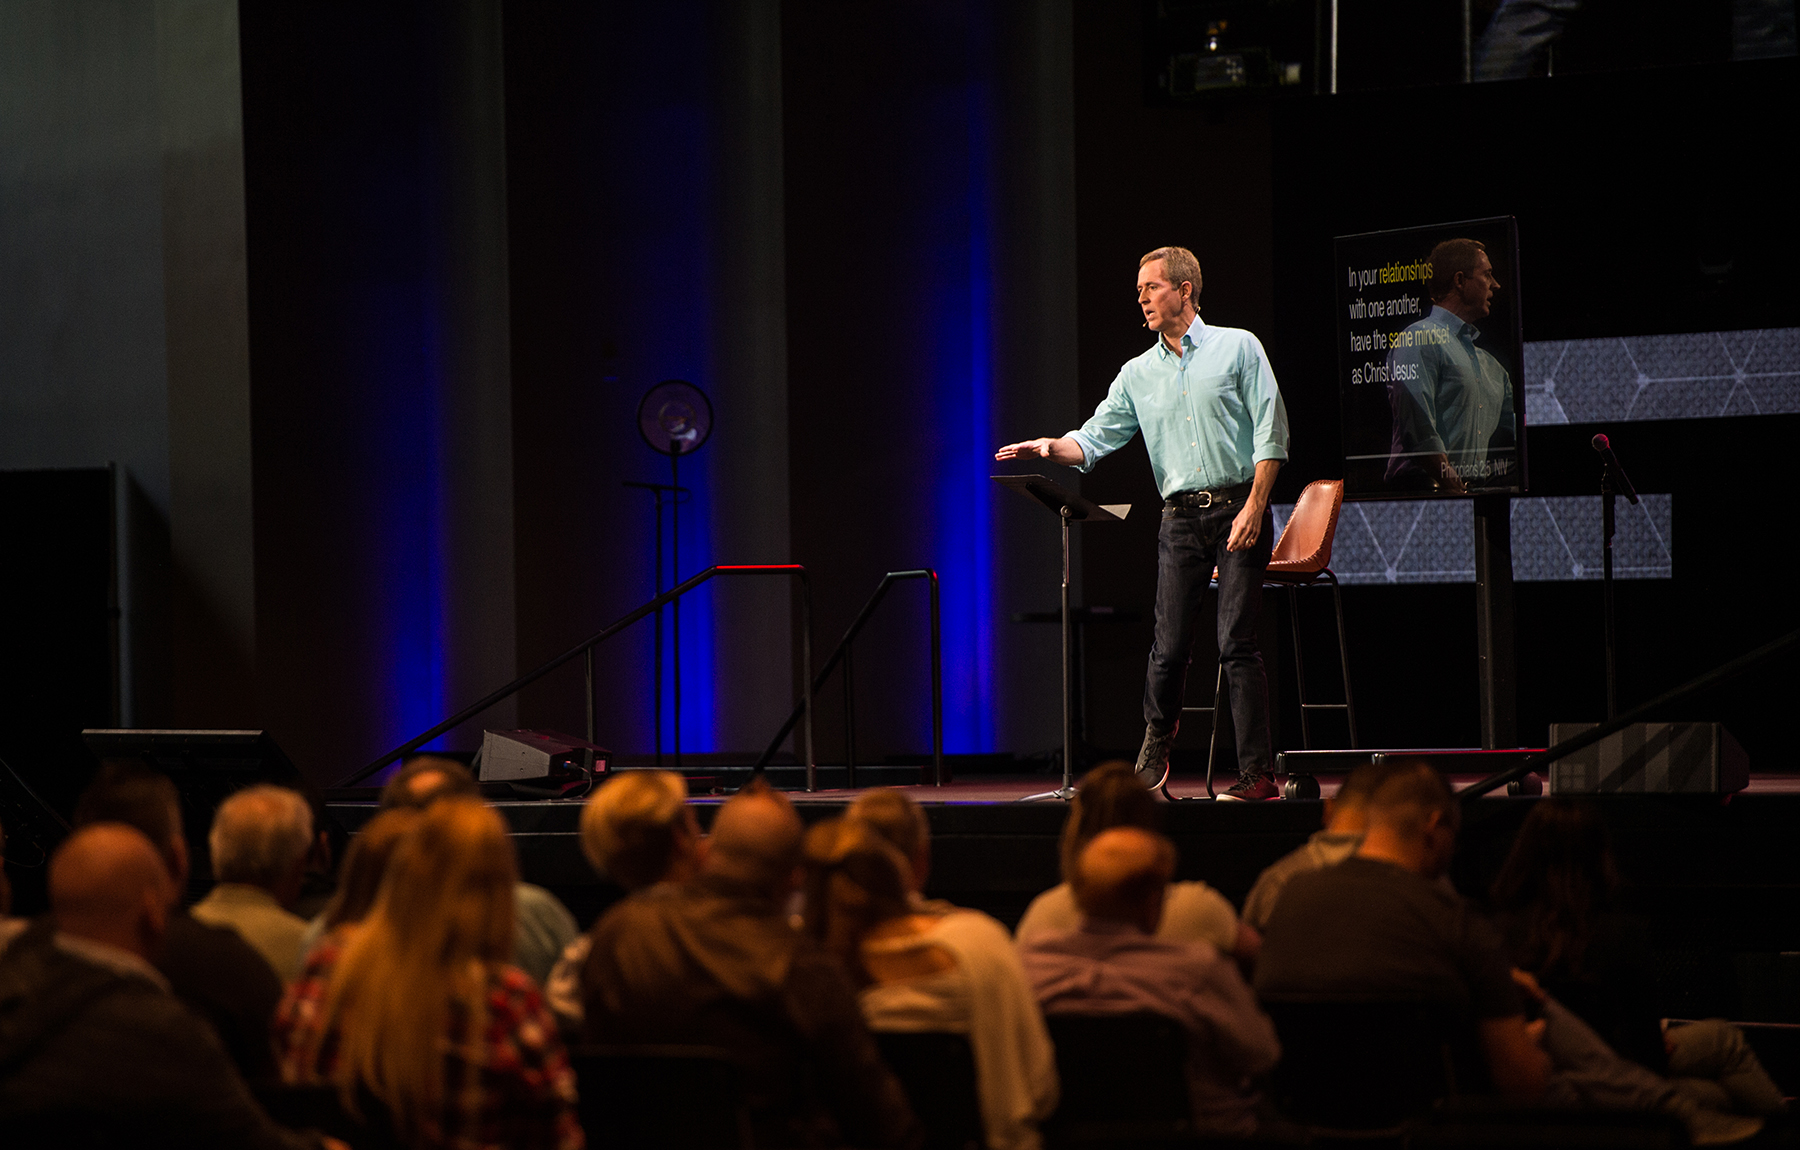 Andy Stanley Shares About Clarity, Controversy and Irresistible Faith